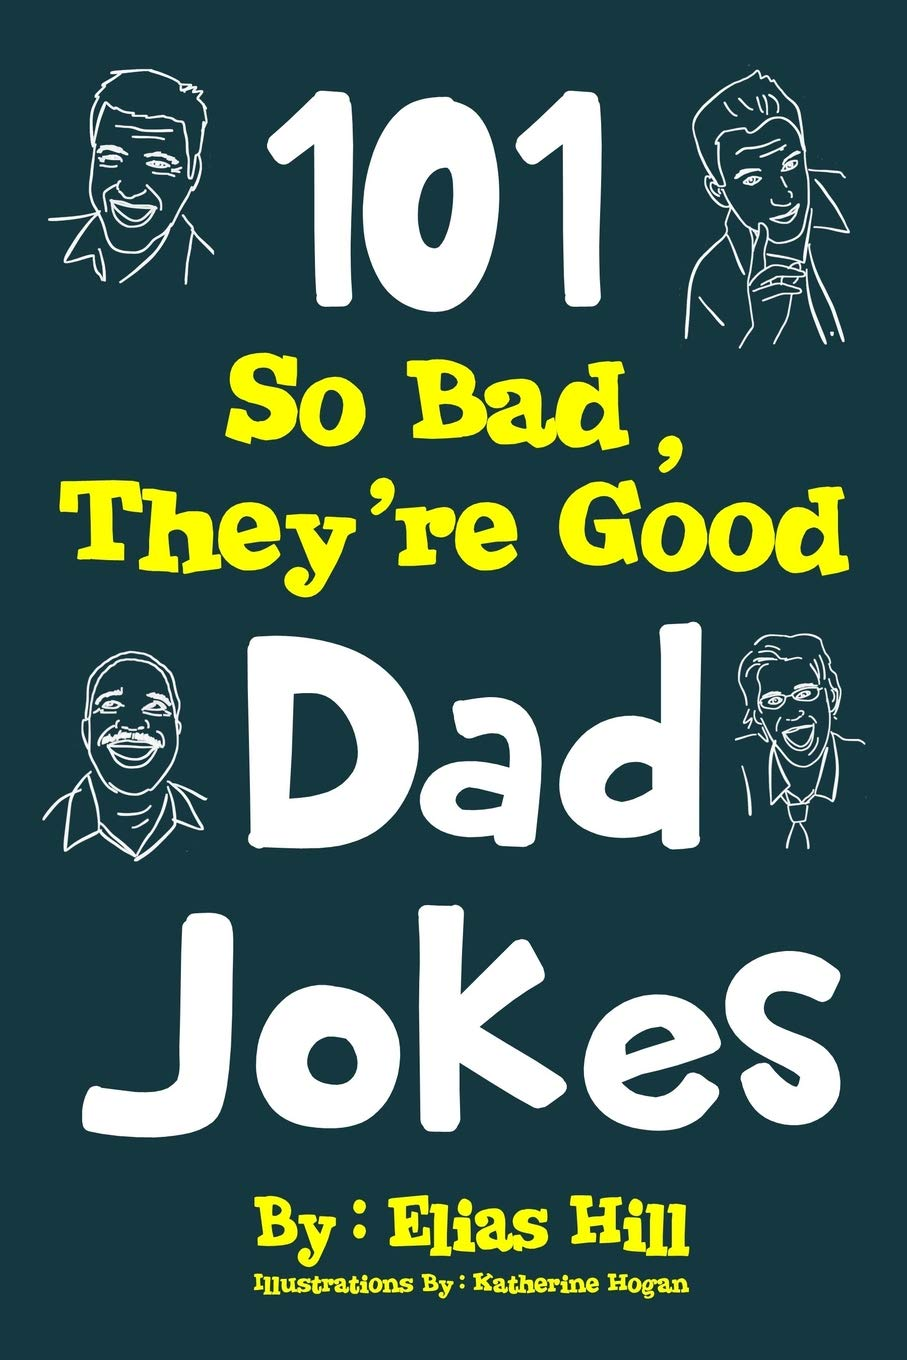 Greetings Card Got you a Car Comedy Rude Funny Humour Fathers Day Dad #192